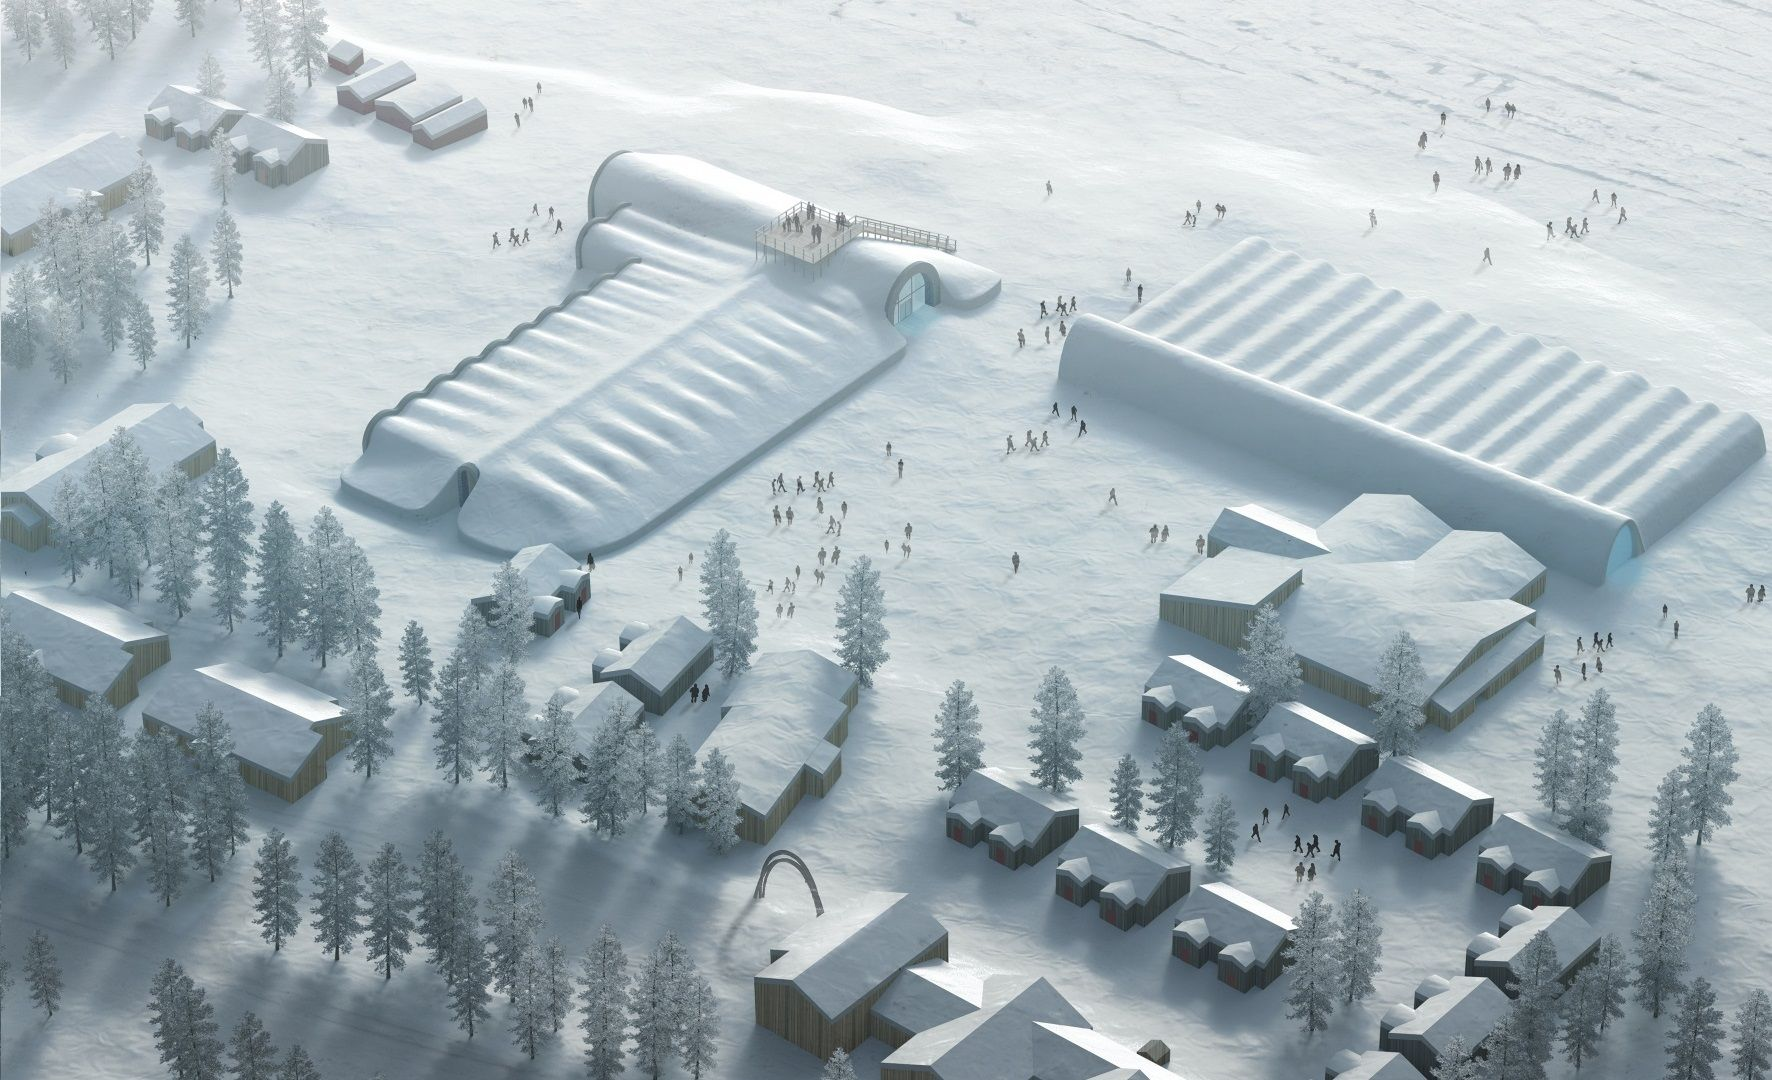 ICEHOTEL 365 Winter. Illustration by PinPin Studio22